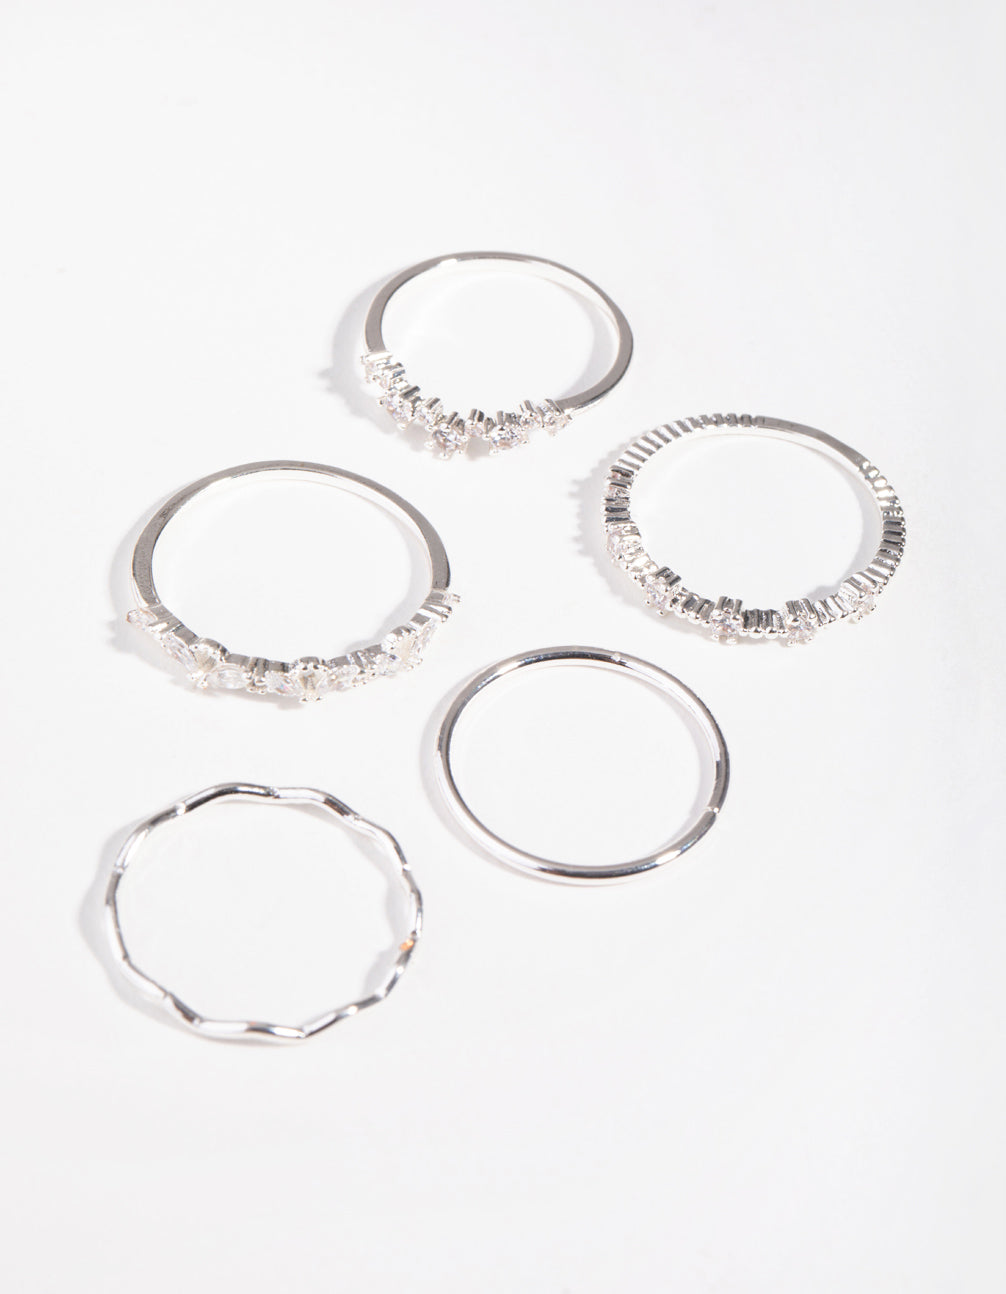 Silver Delicate Bands 5-Pack Rings